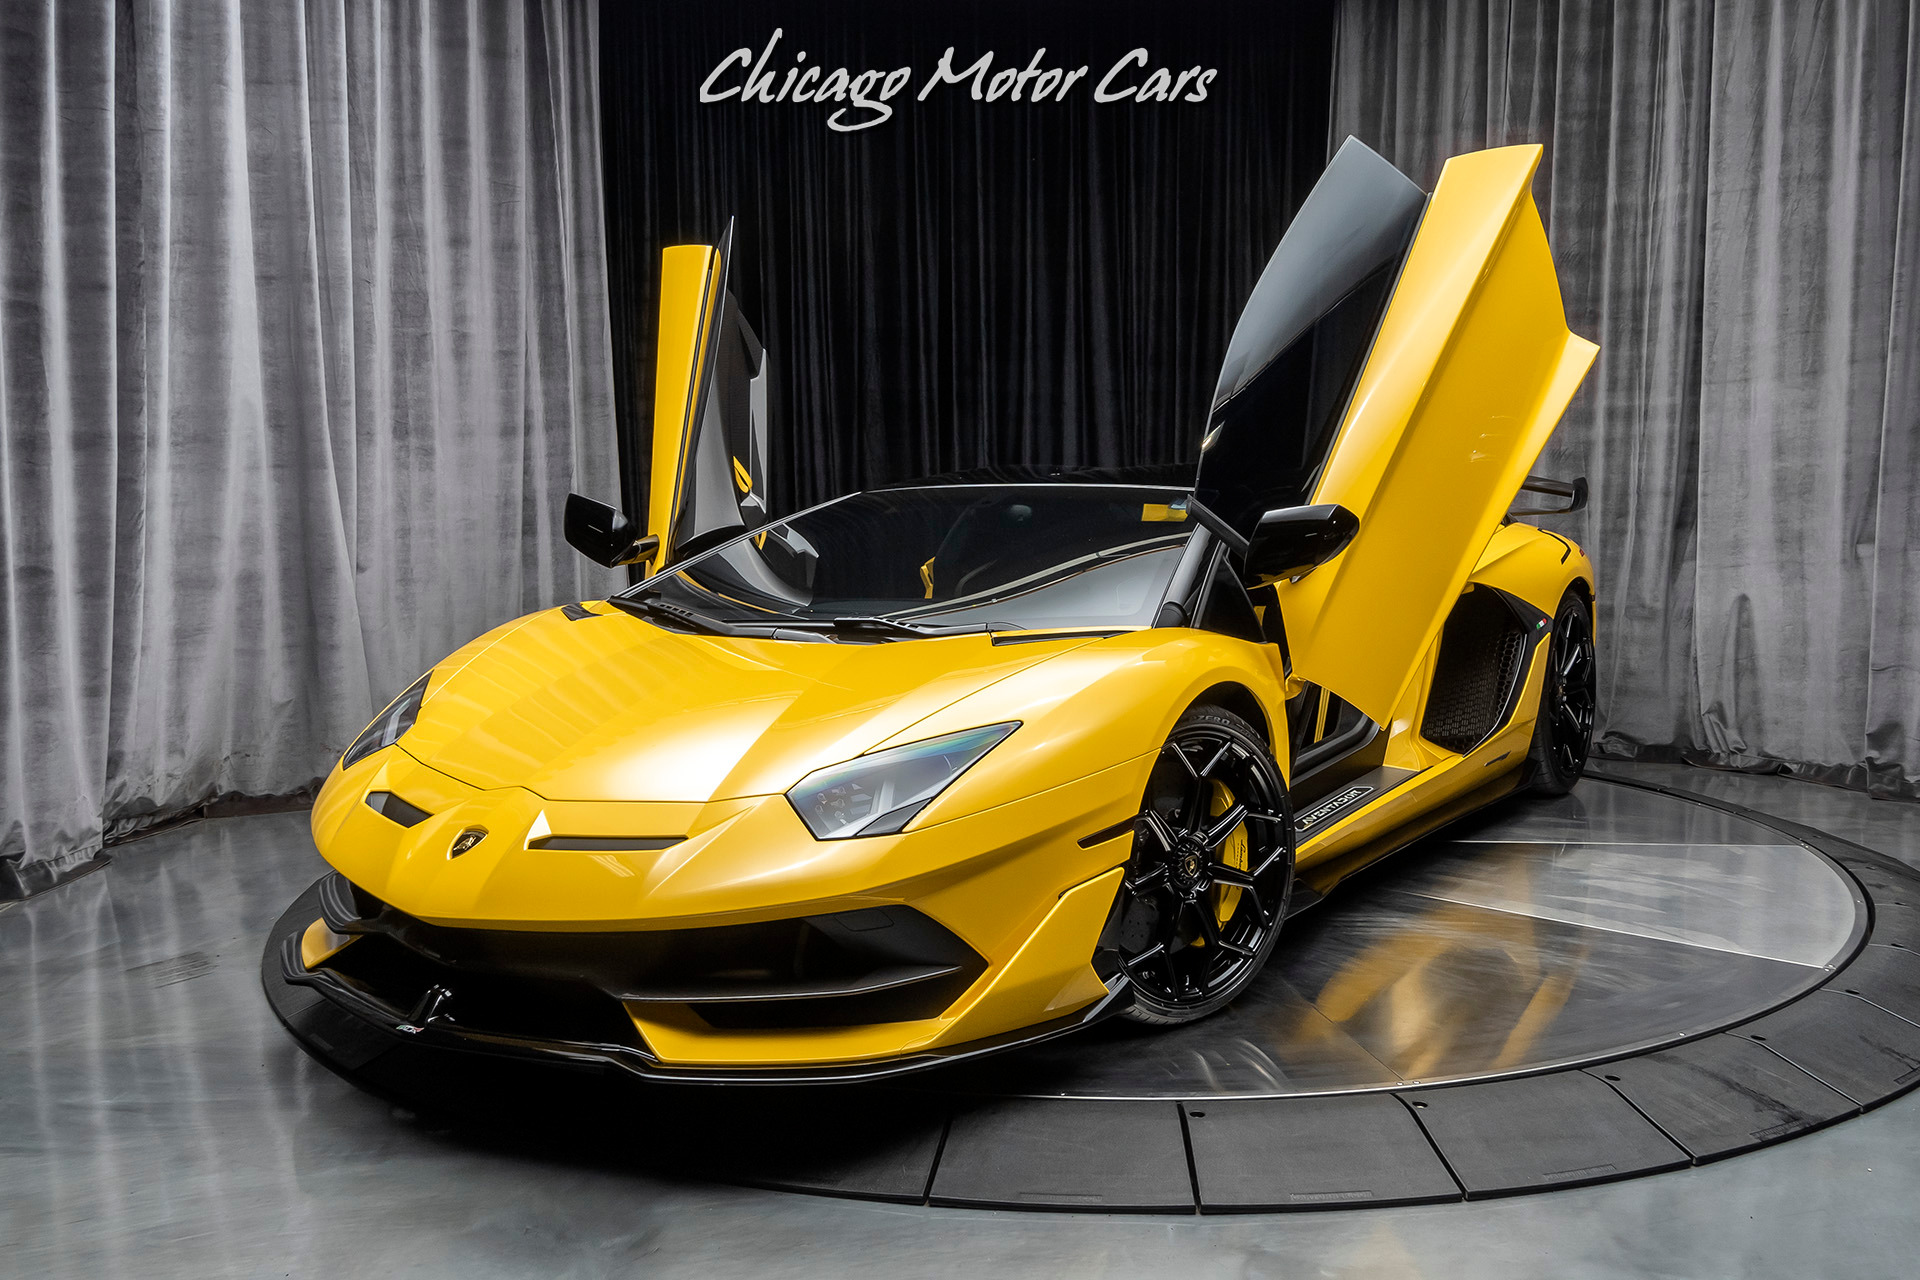 Used 2020 Lamborghini Aventador Svj Roadster Only 263 Miles New Giallo Orion Rare For Sale Special Pricing Chicago Motor Cars Stock 17144